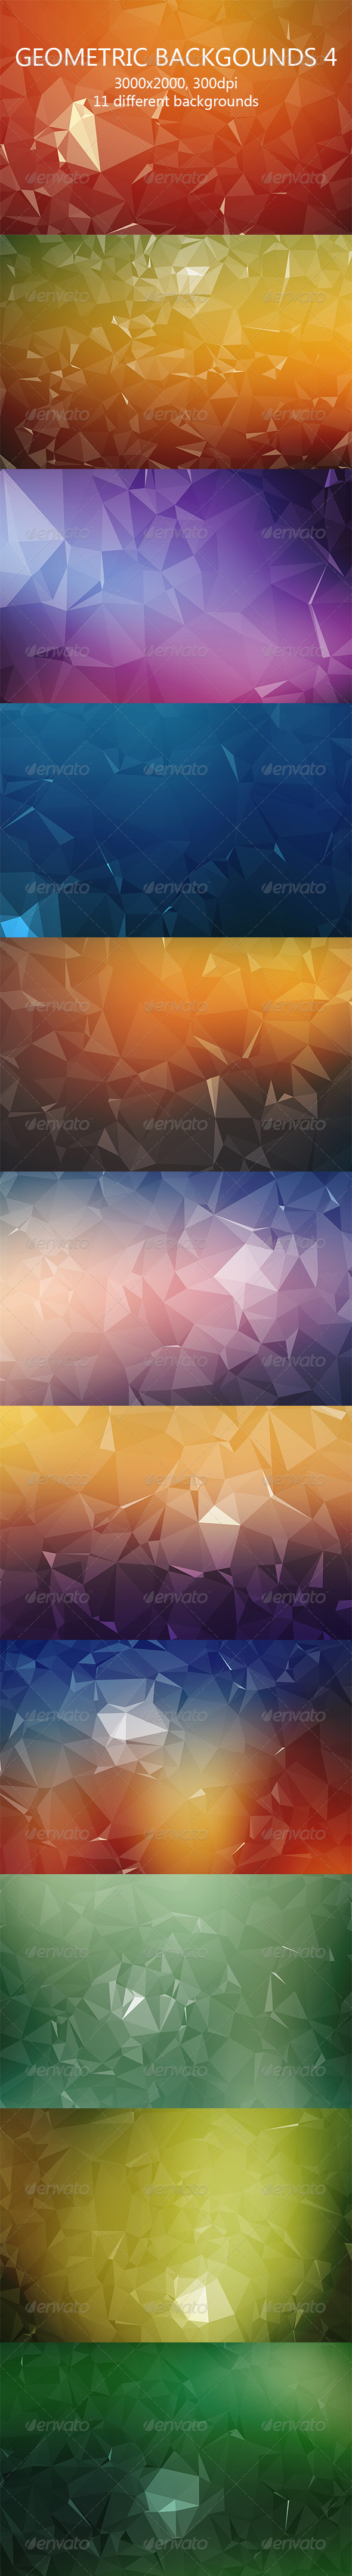 GraphicRiver Geometric Backgrounds 4 8146249